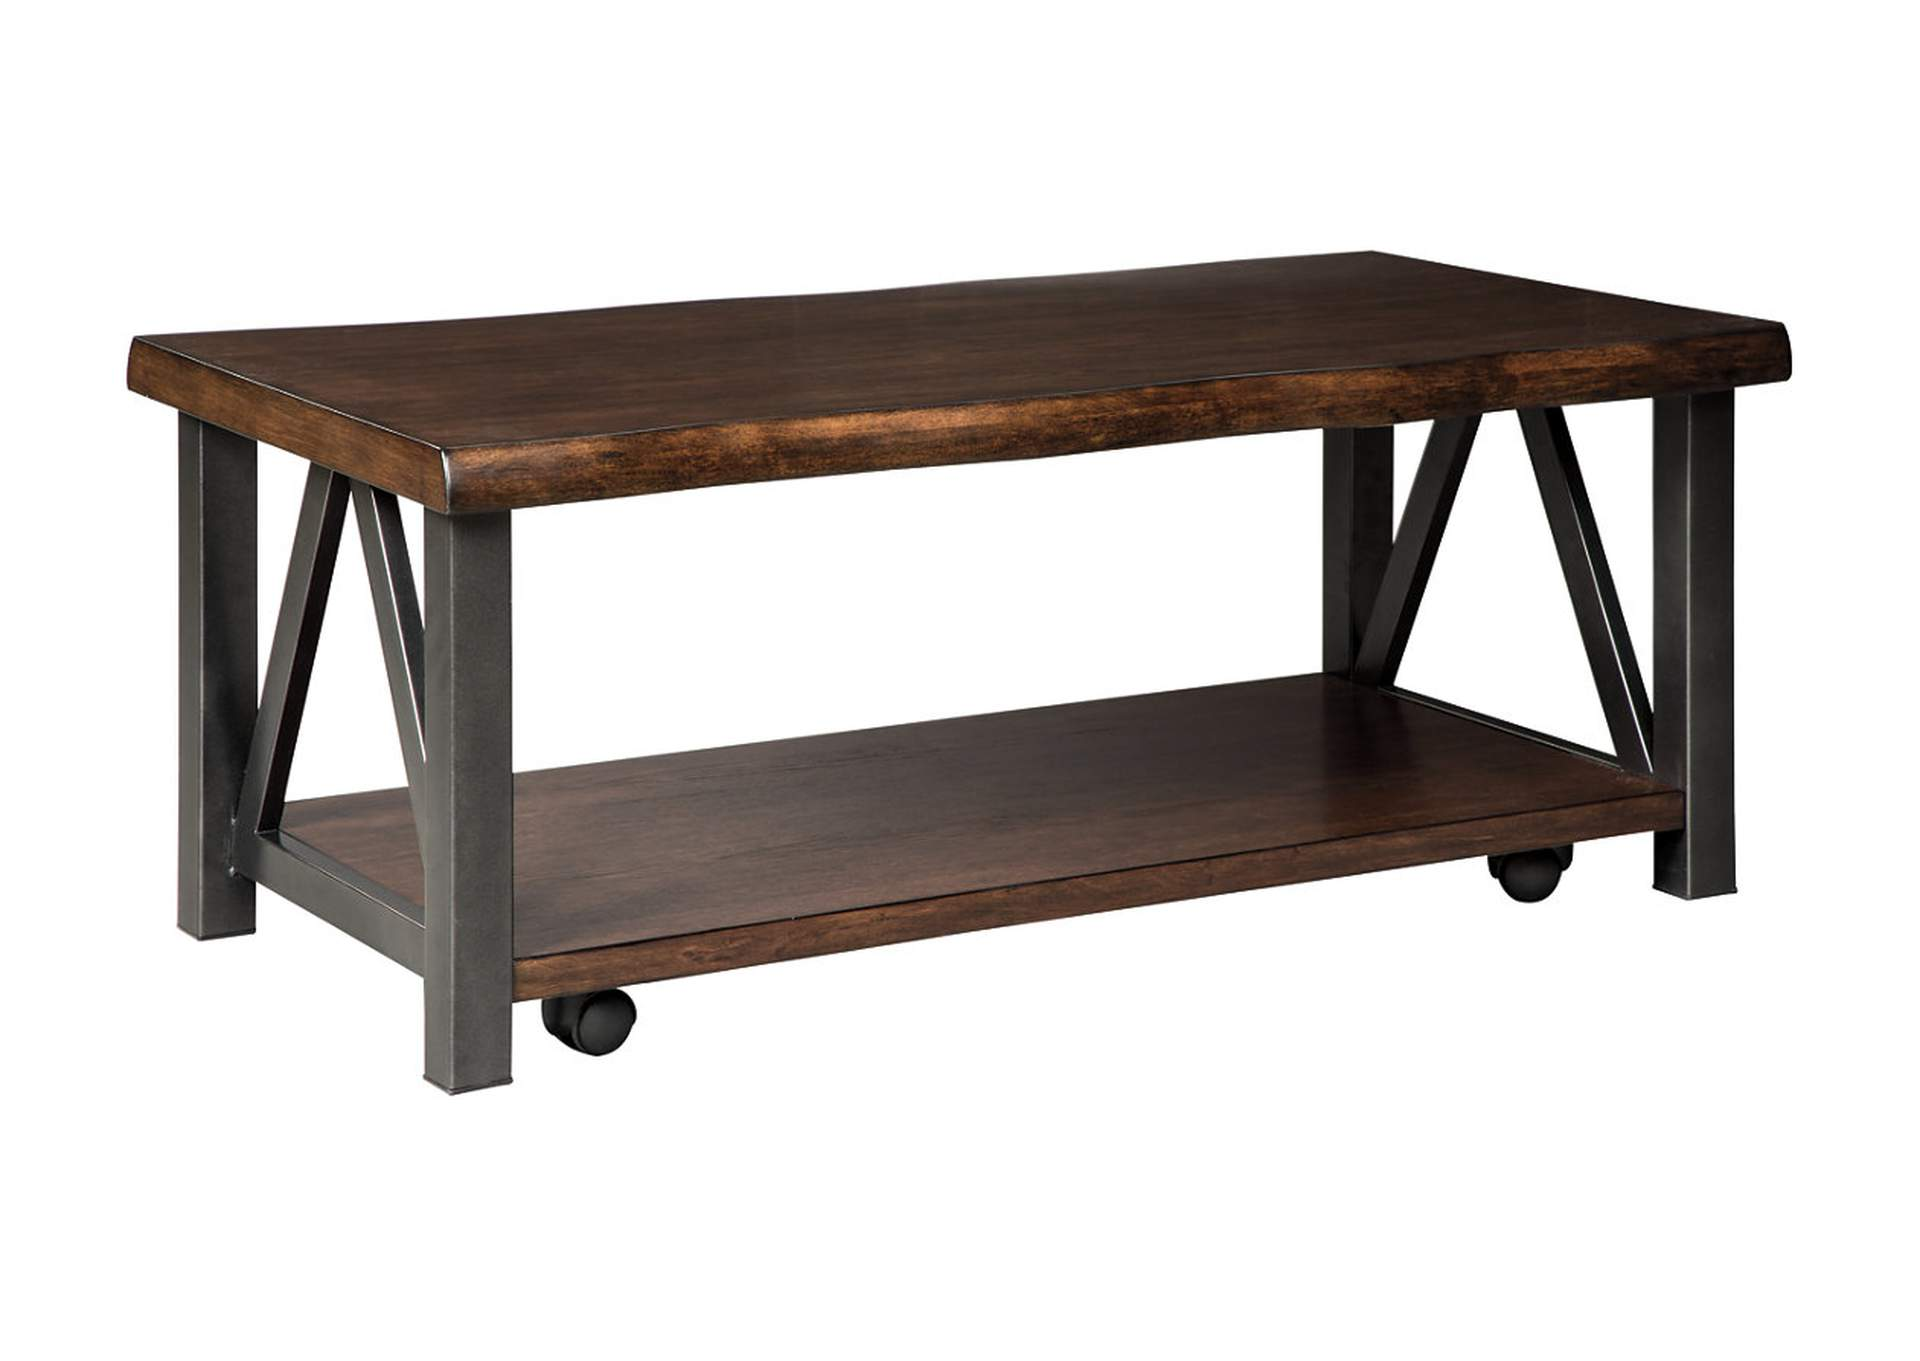 Esmarina Walnut Brown Rectangular Cocktail Table,Signature Design By Ashley